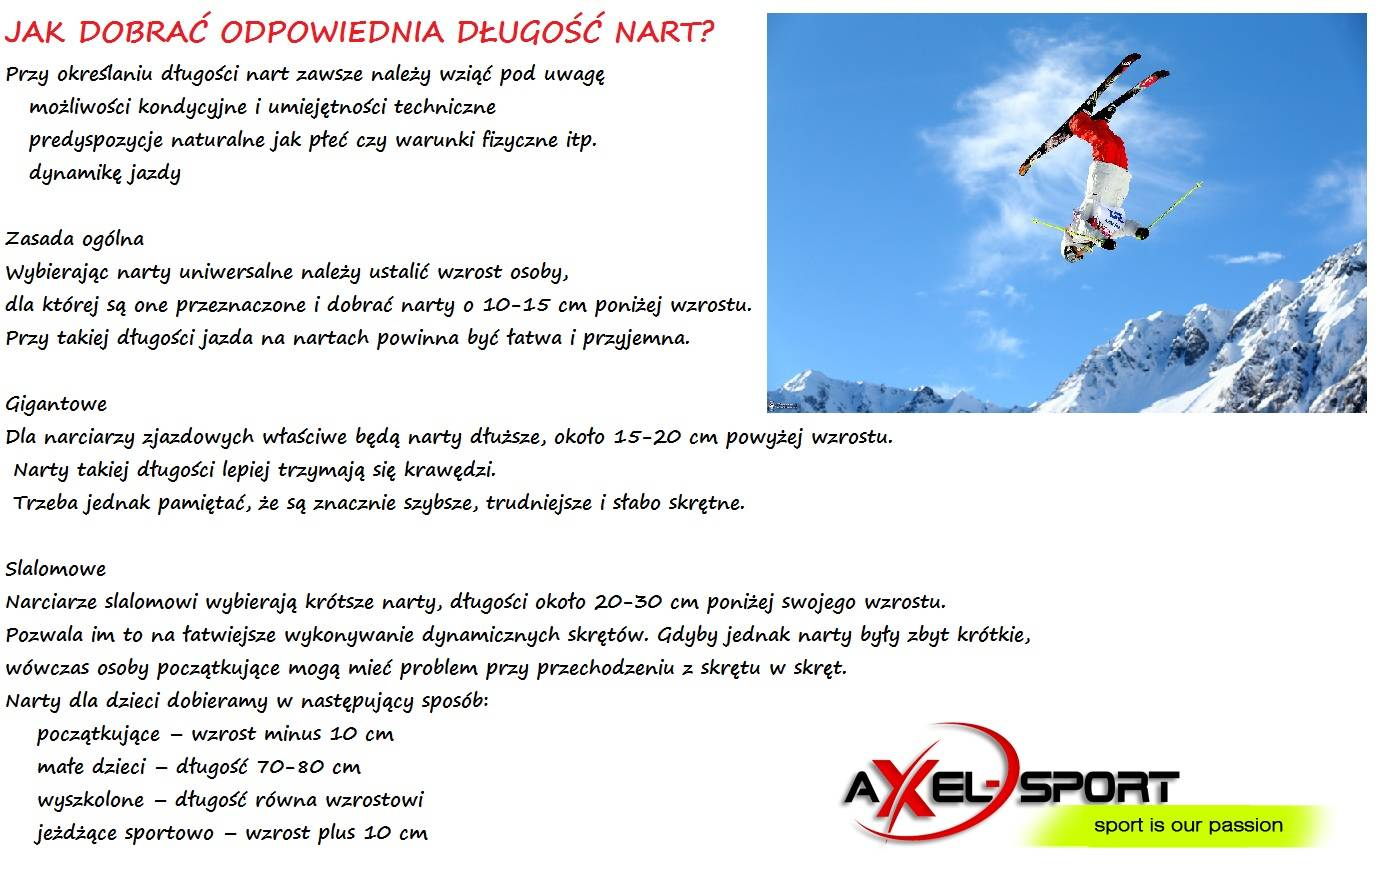 http://www.axel-sport.pl/stThumbnailPlugin.php?i=media/products/38d8be4159384c06e540aaa64d09b2a7/images/narty1.jpg&t=big&f=product&u=1479822912